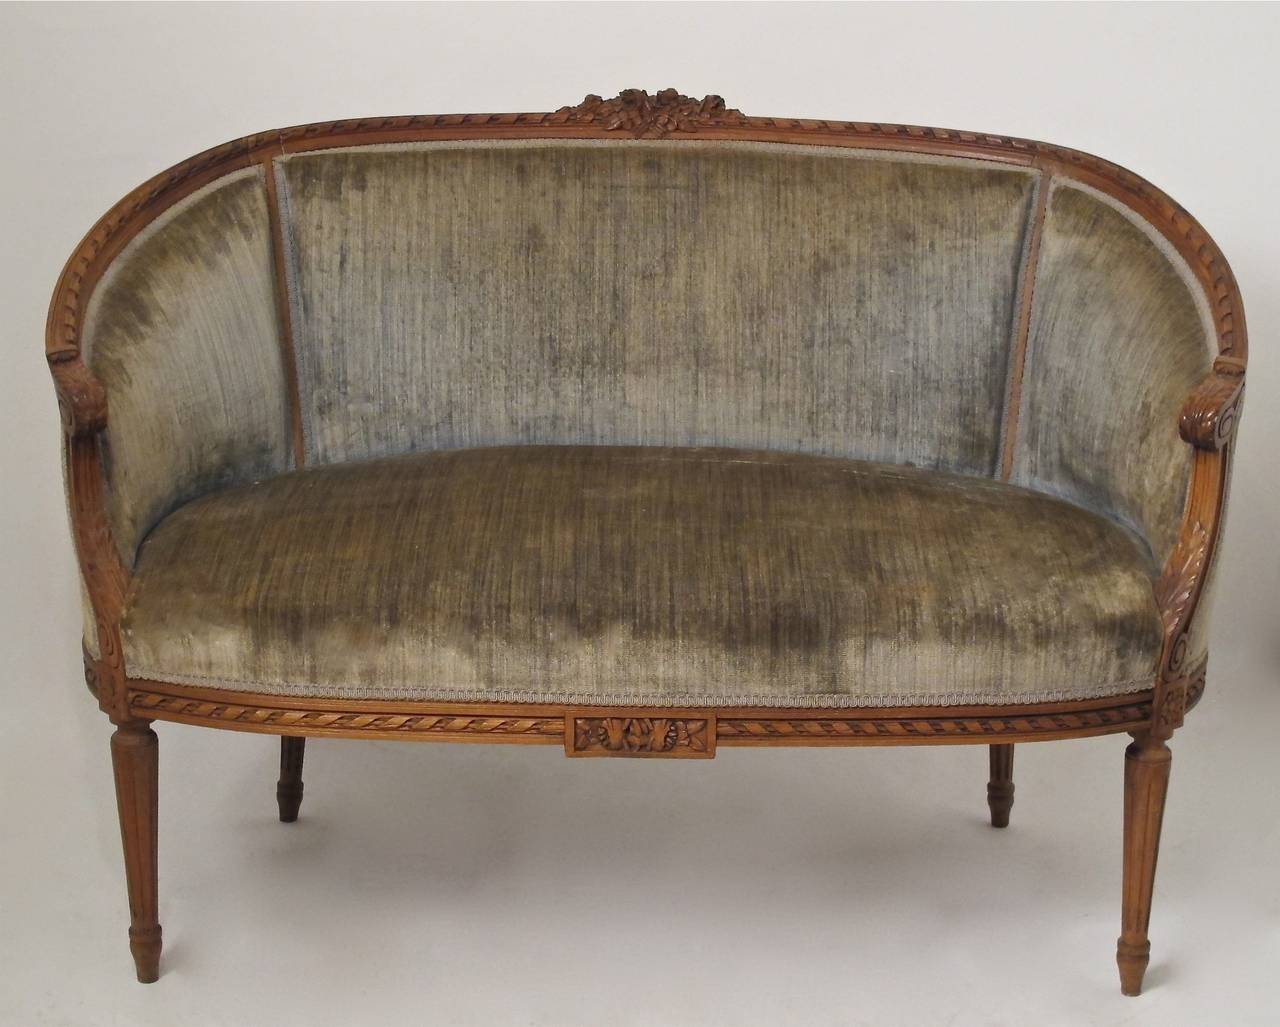 French louis xvi canape at 1stdibs for Canape in french